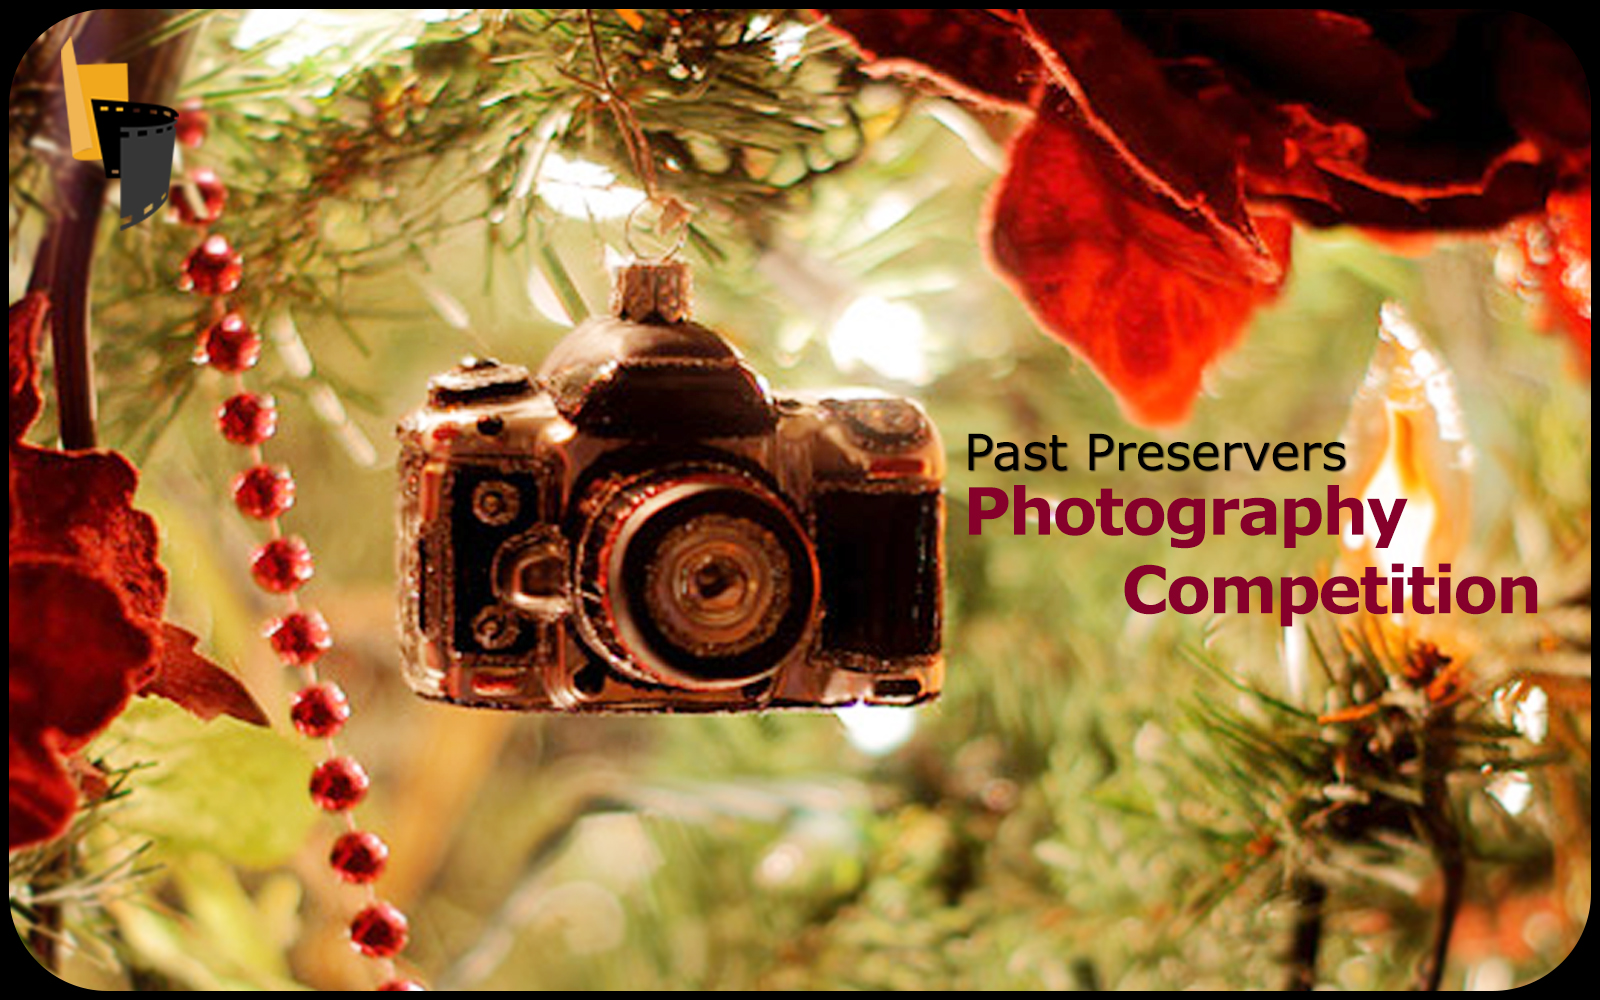 Past Preservers Photography Competition